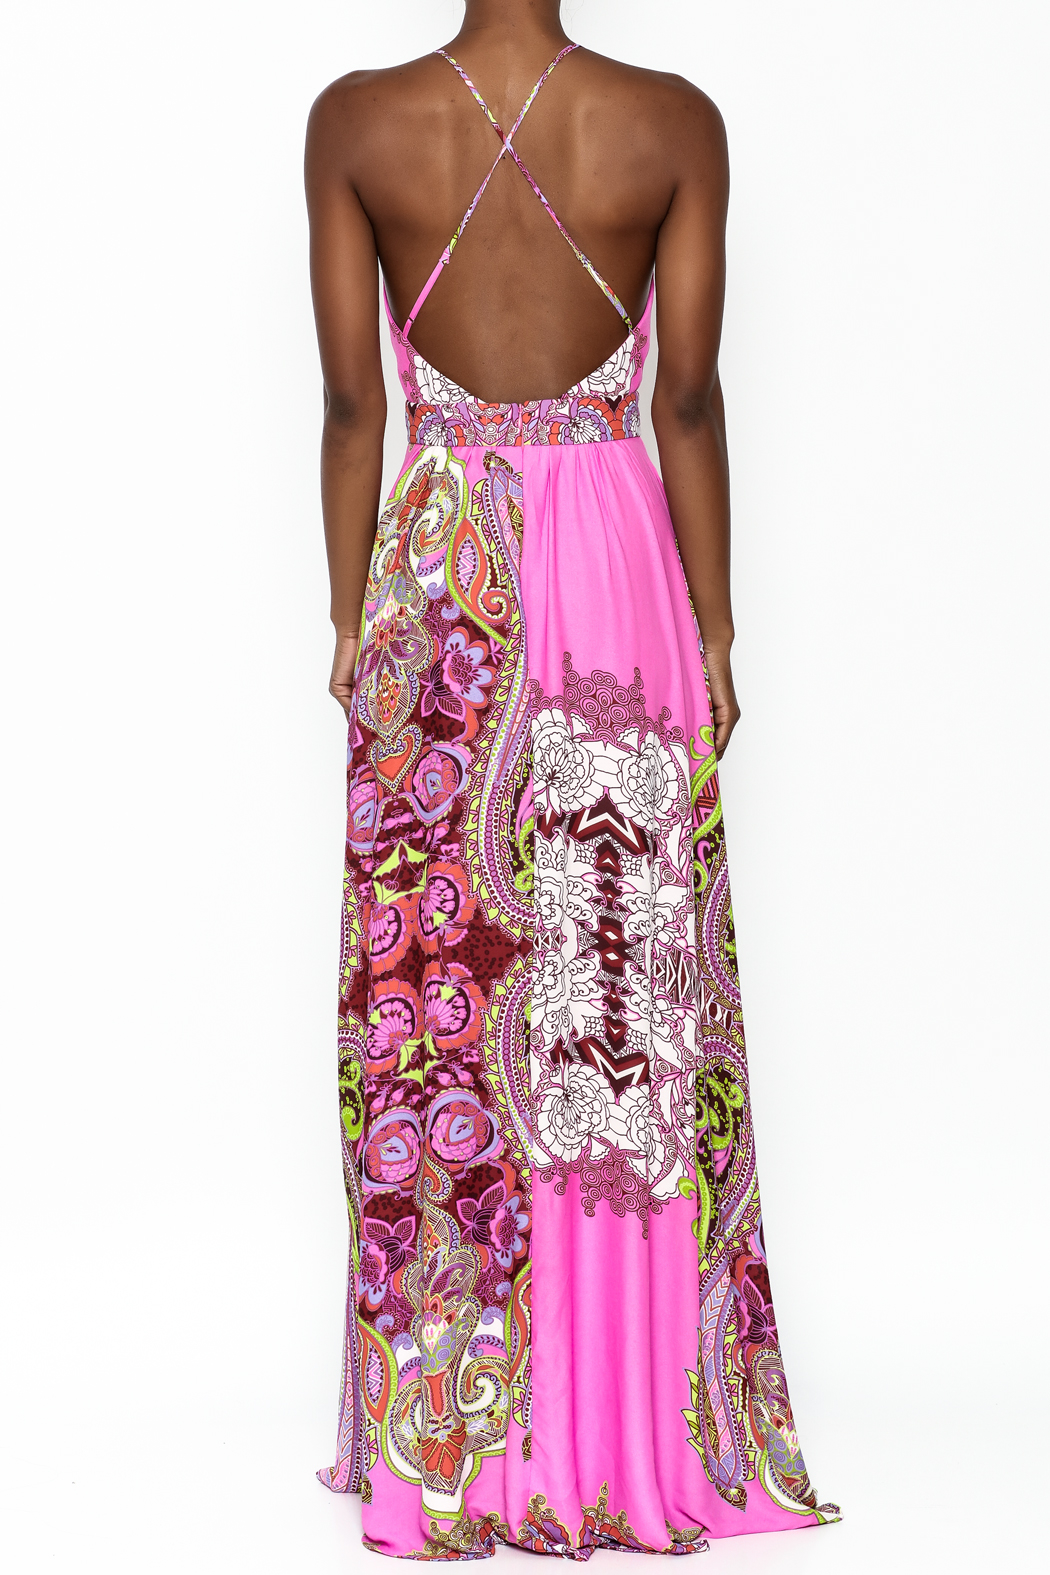 LIFTED Boutique Pink Maxi Dress - Back Cropped Image